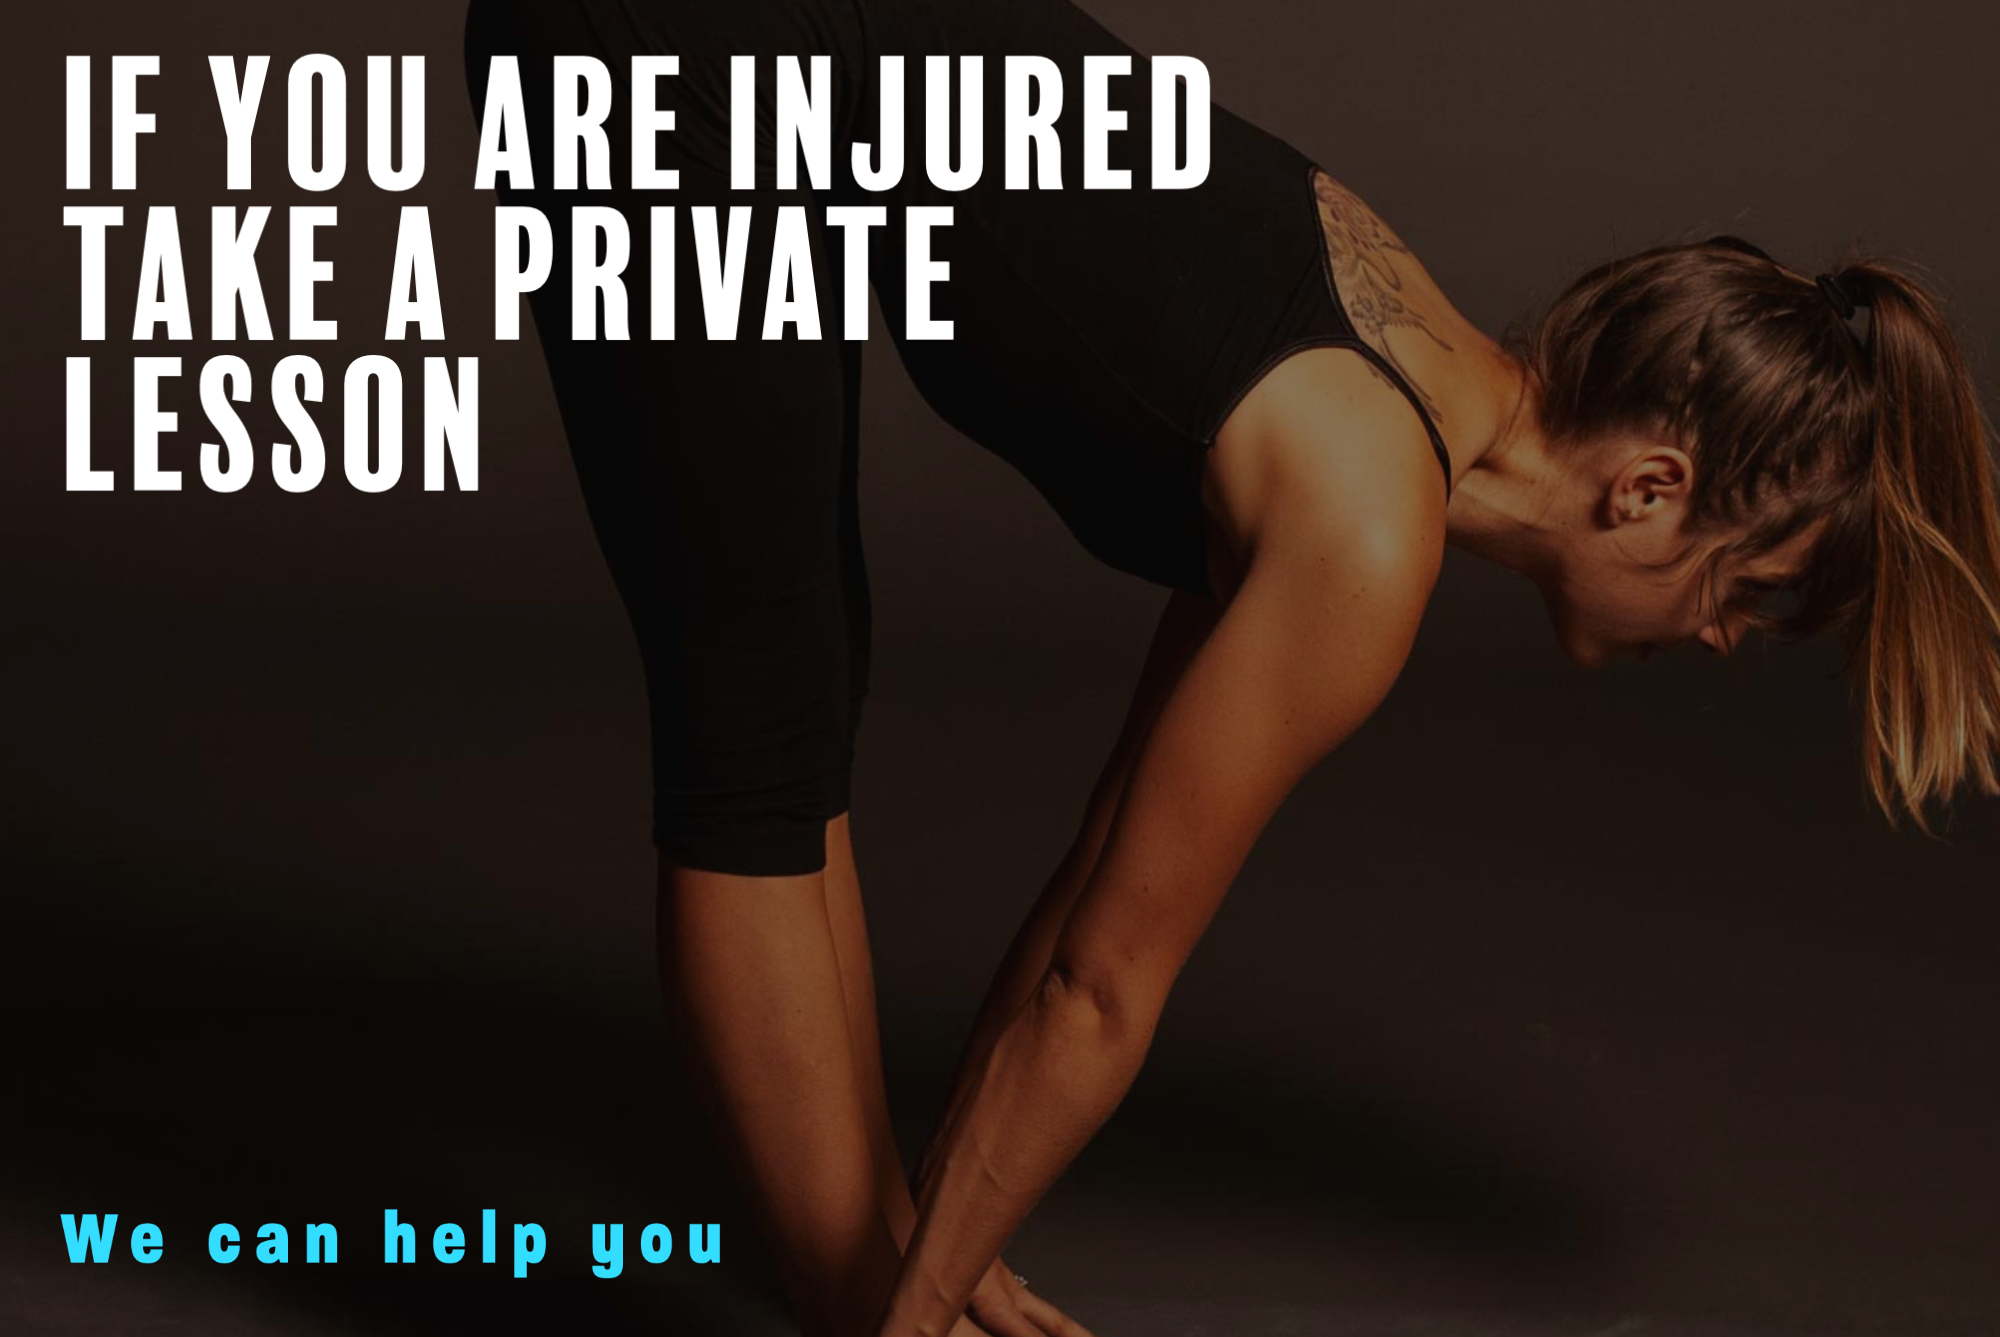 Get good training!  CPY is the local leading expert on yoga and injuries.  Set up a personal training session today!